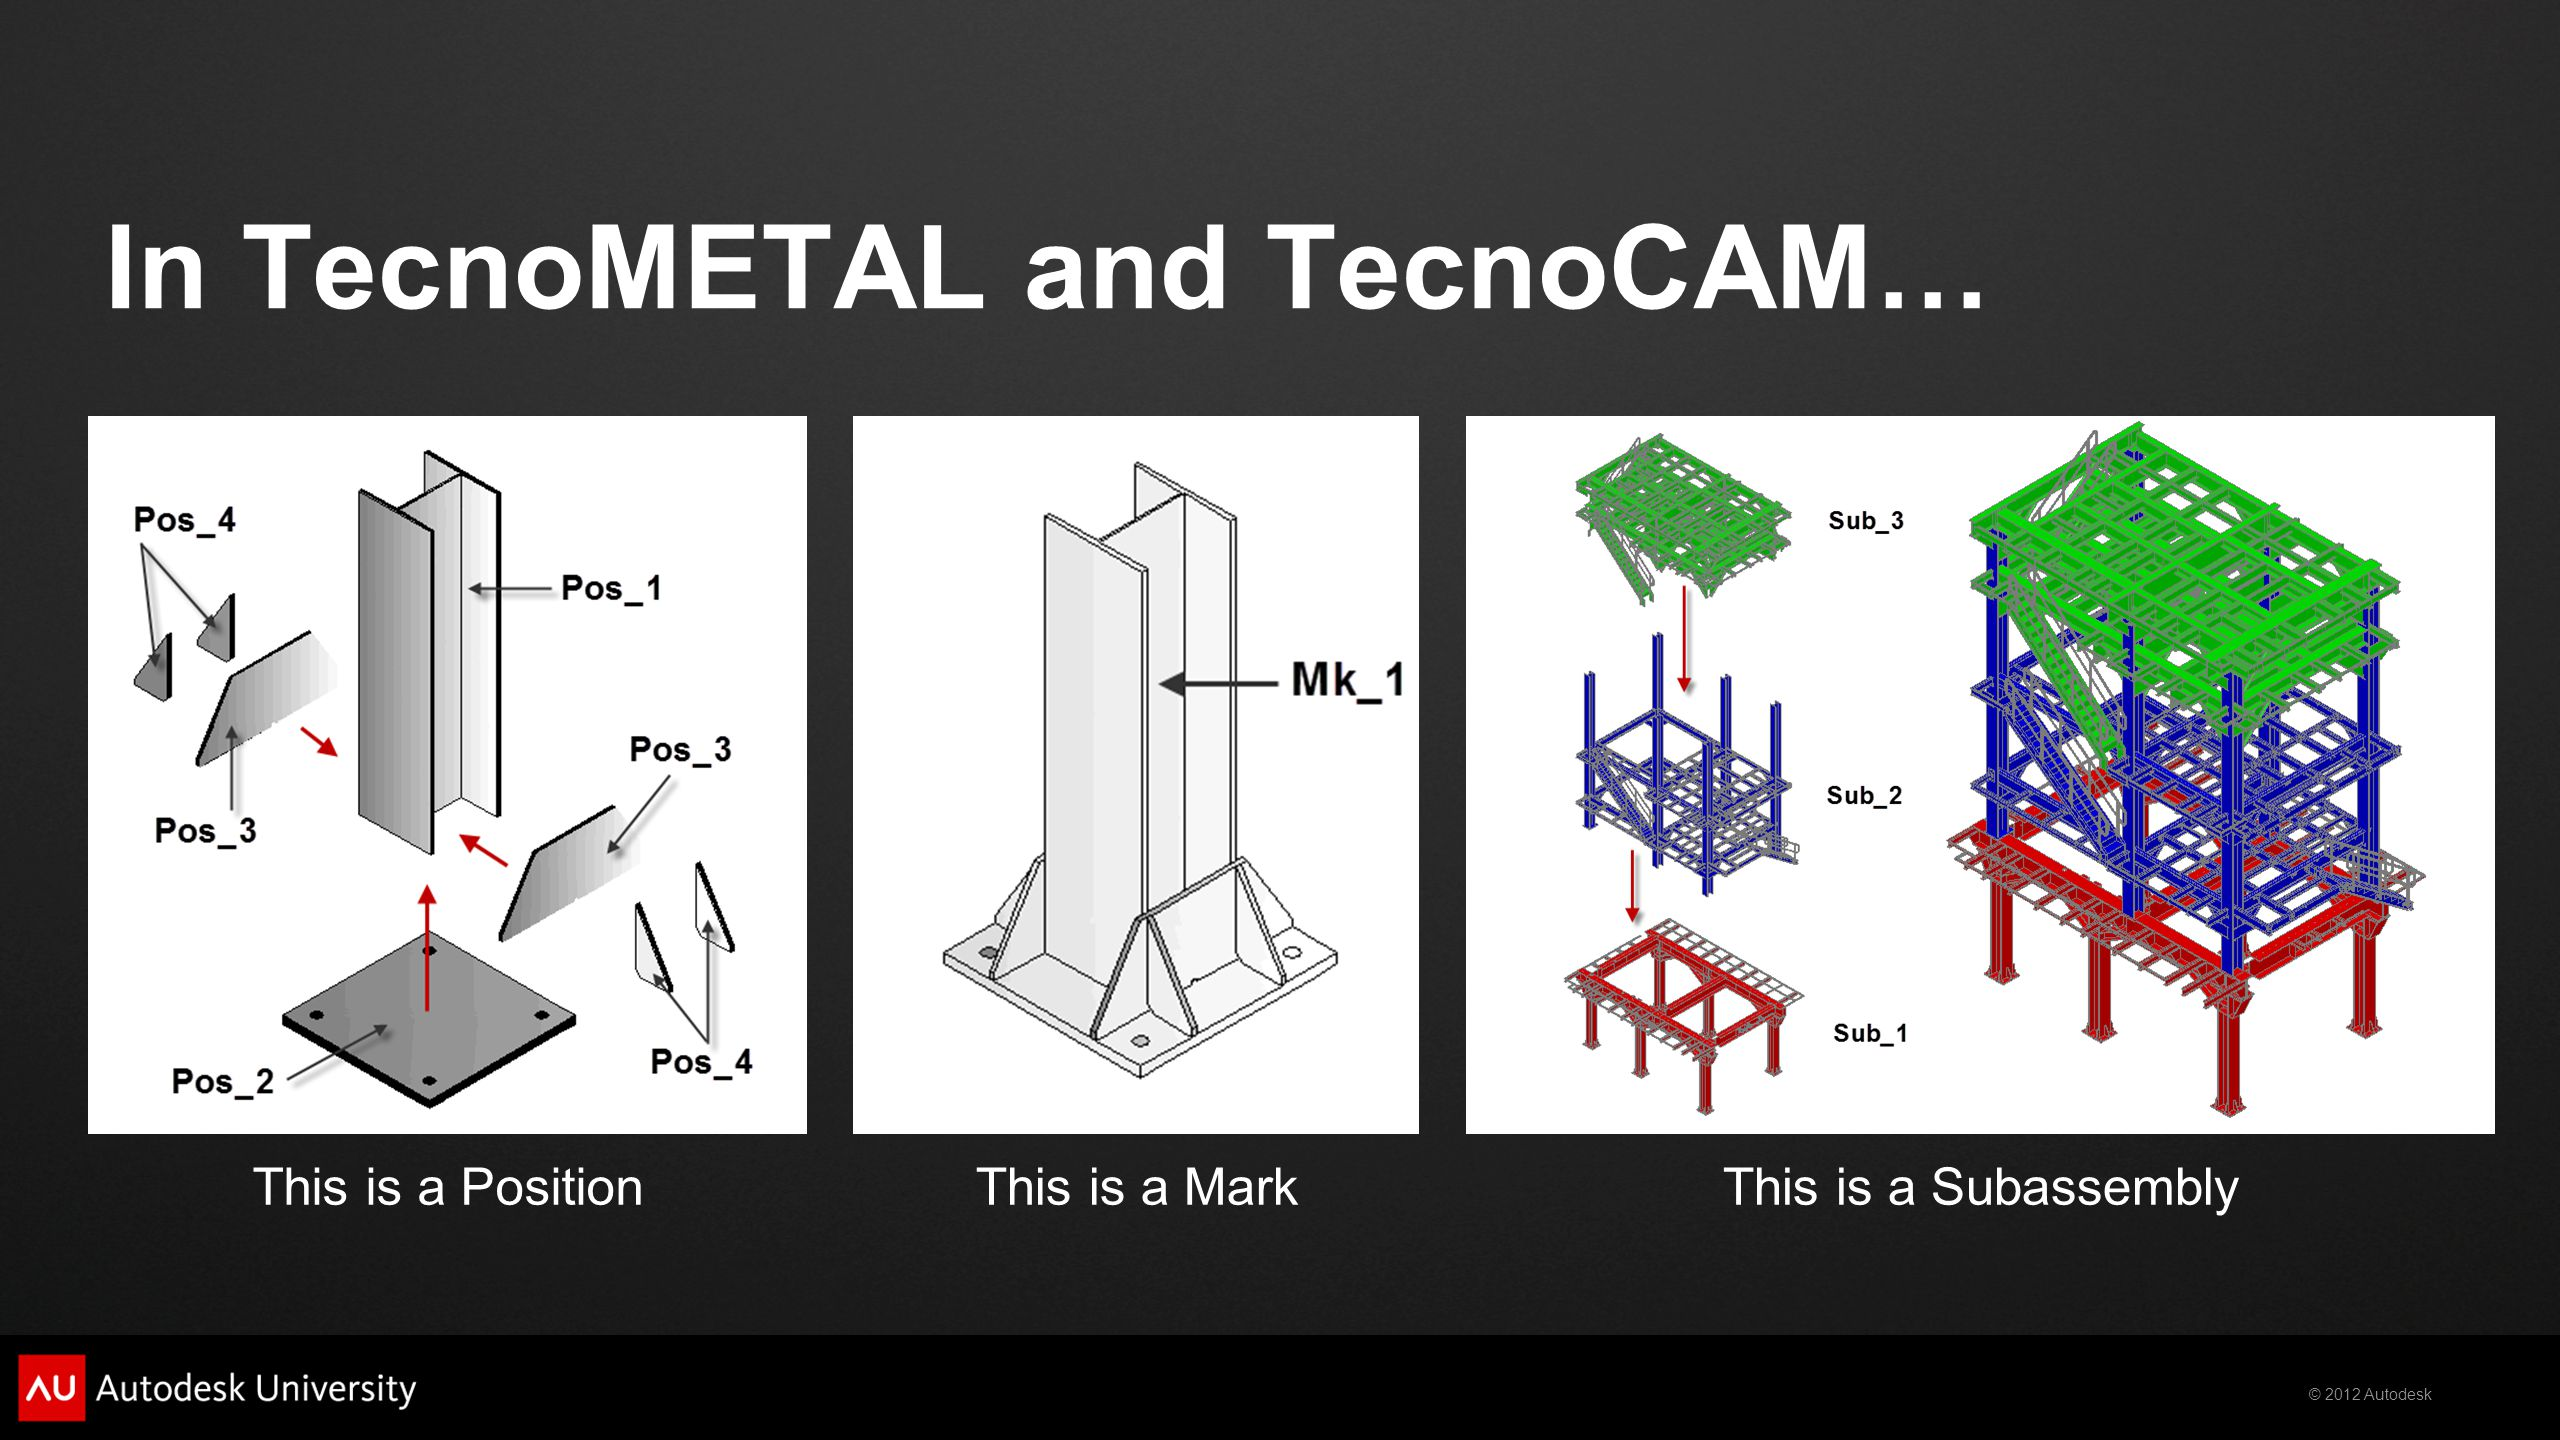 In TecnoMETAL and TecnoCAM…